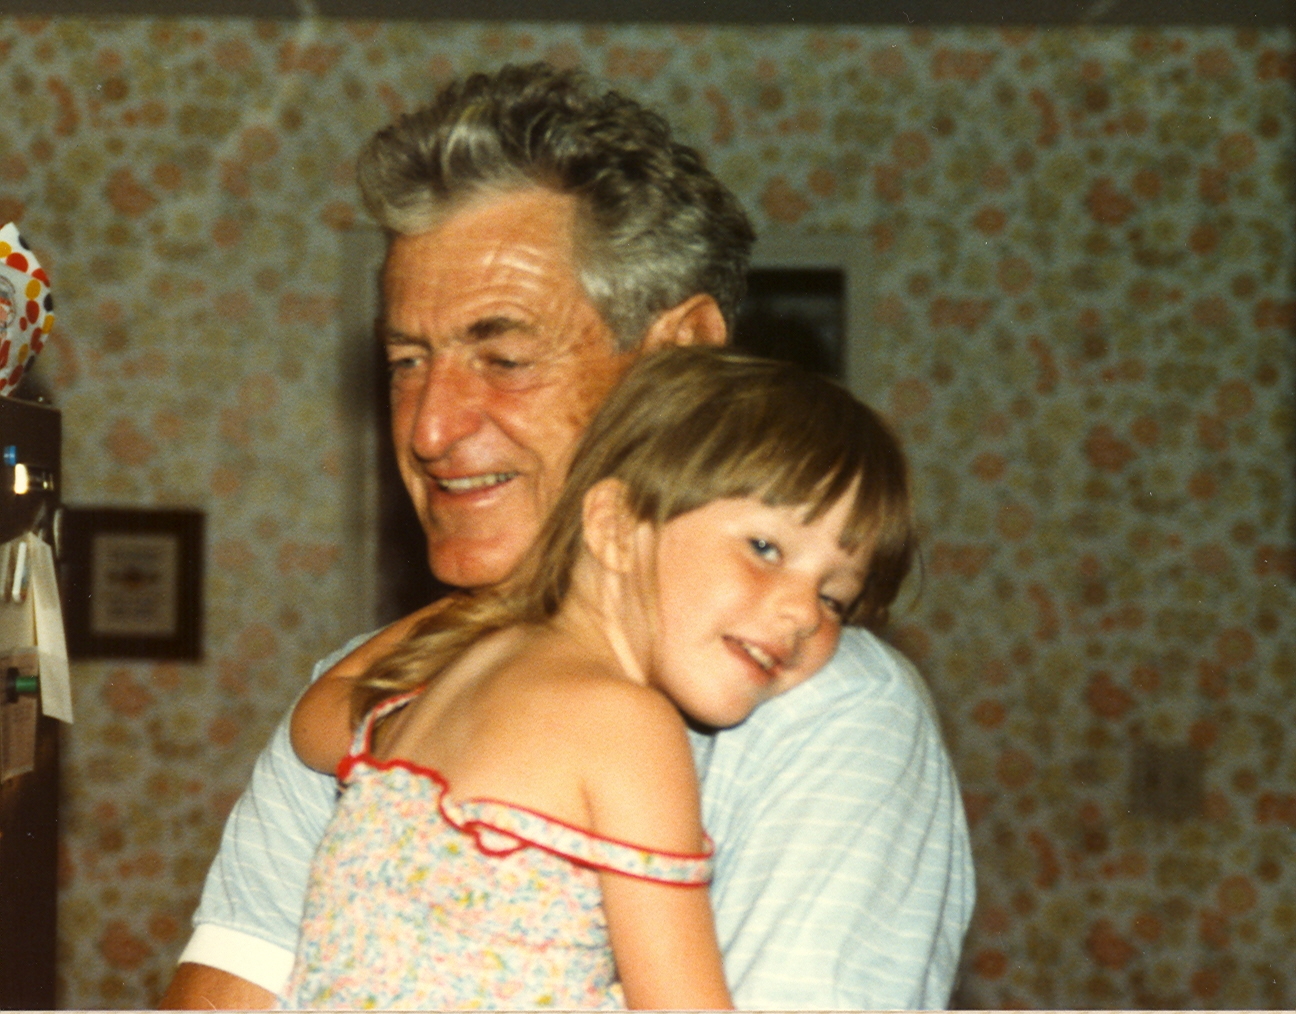 My grandfather and me in 1984.